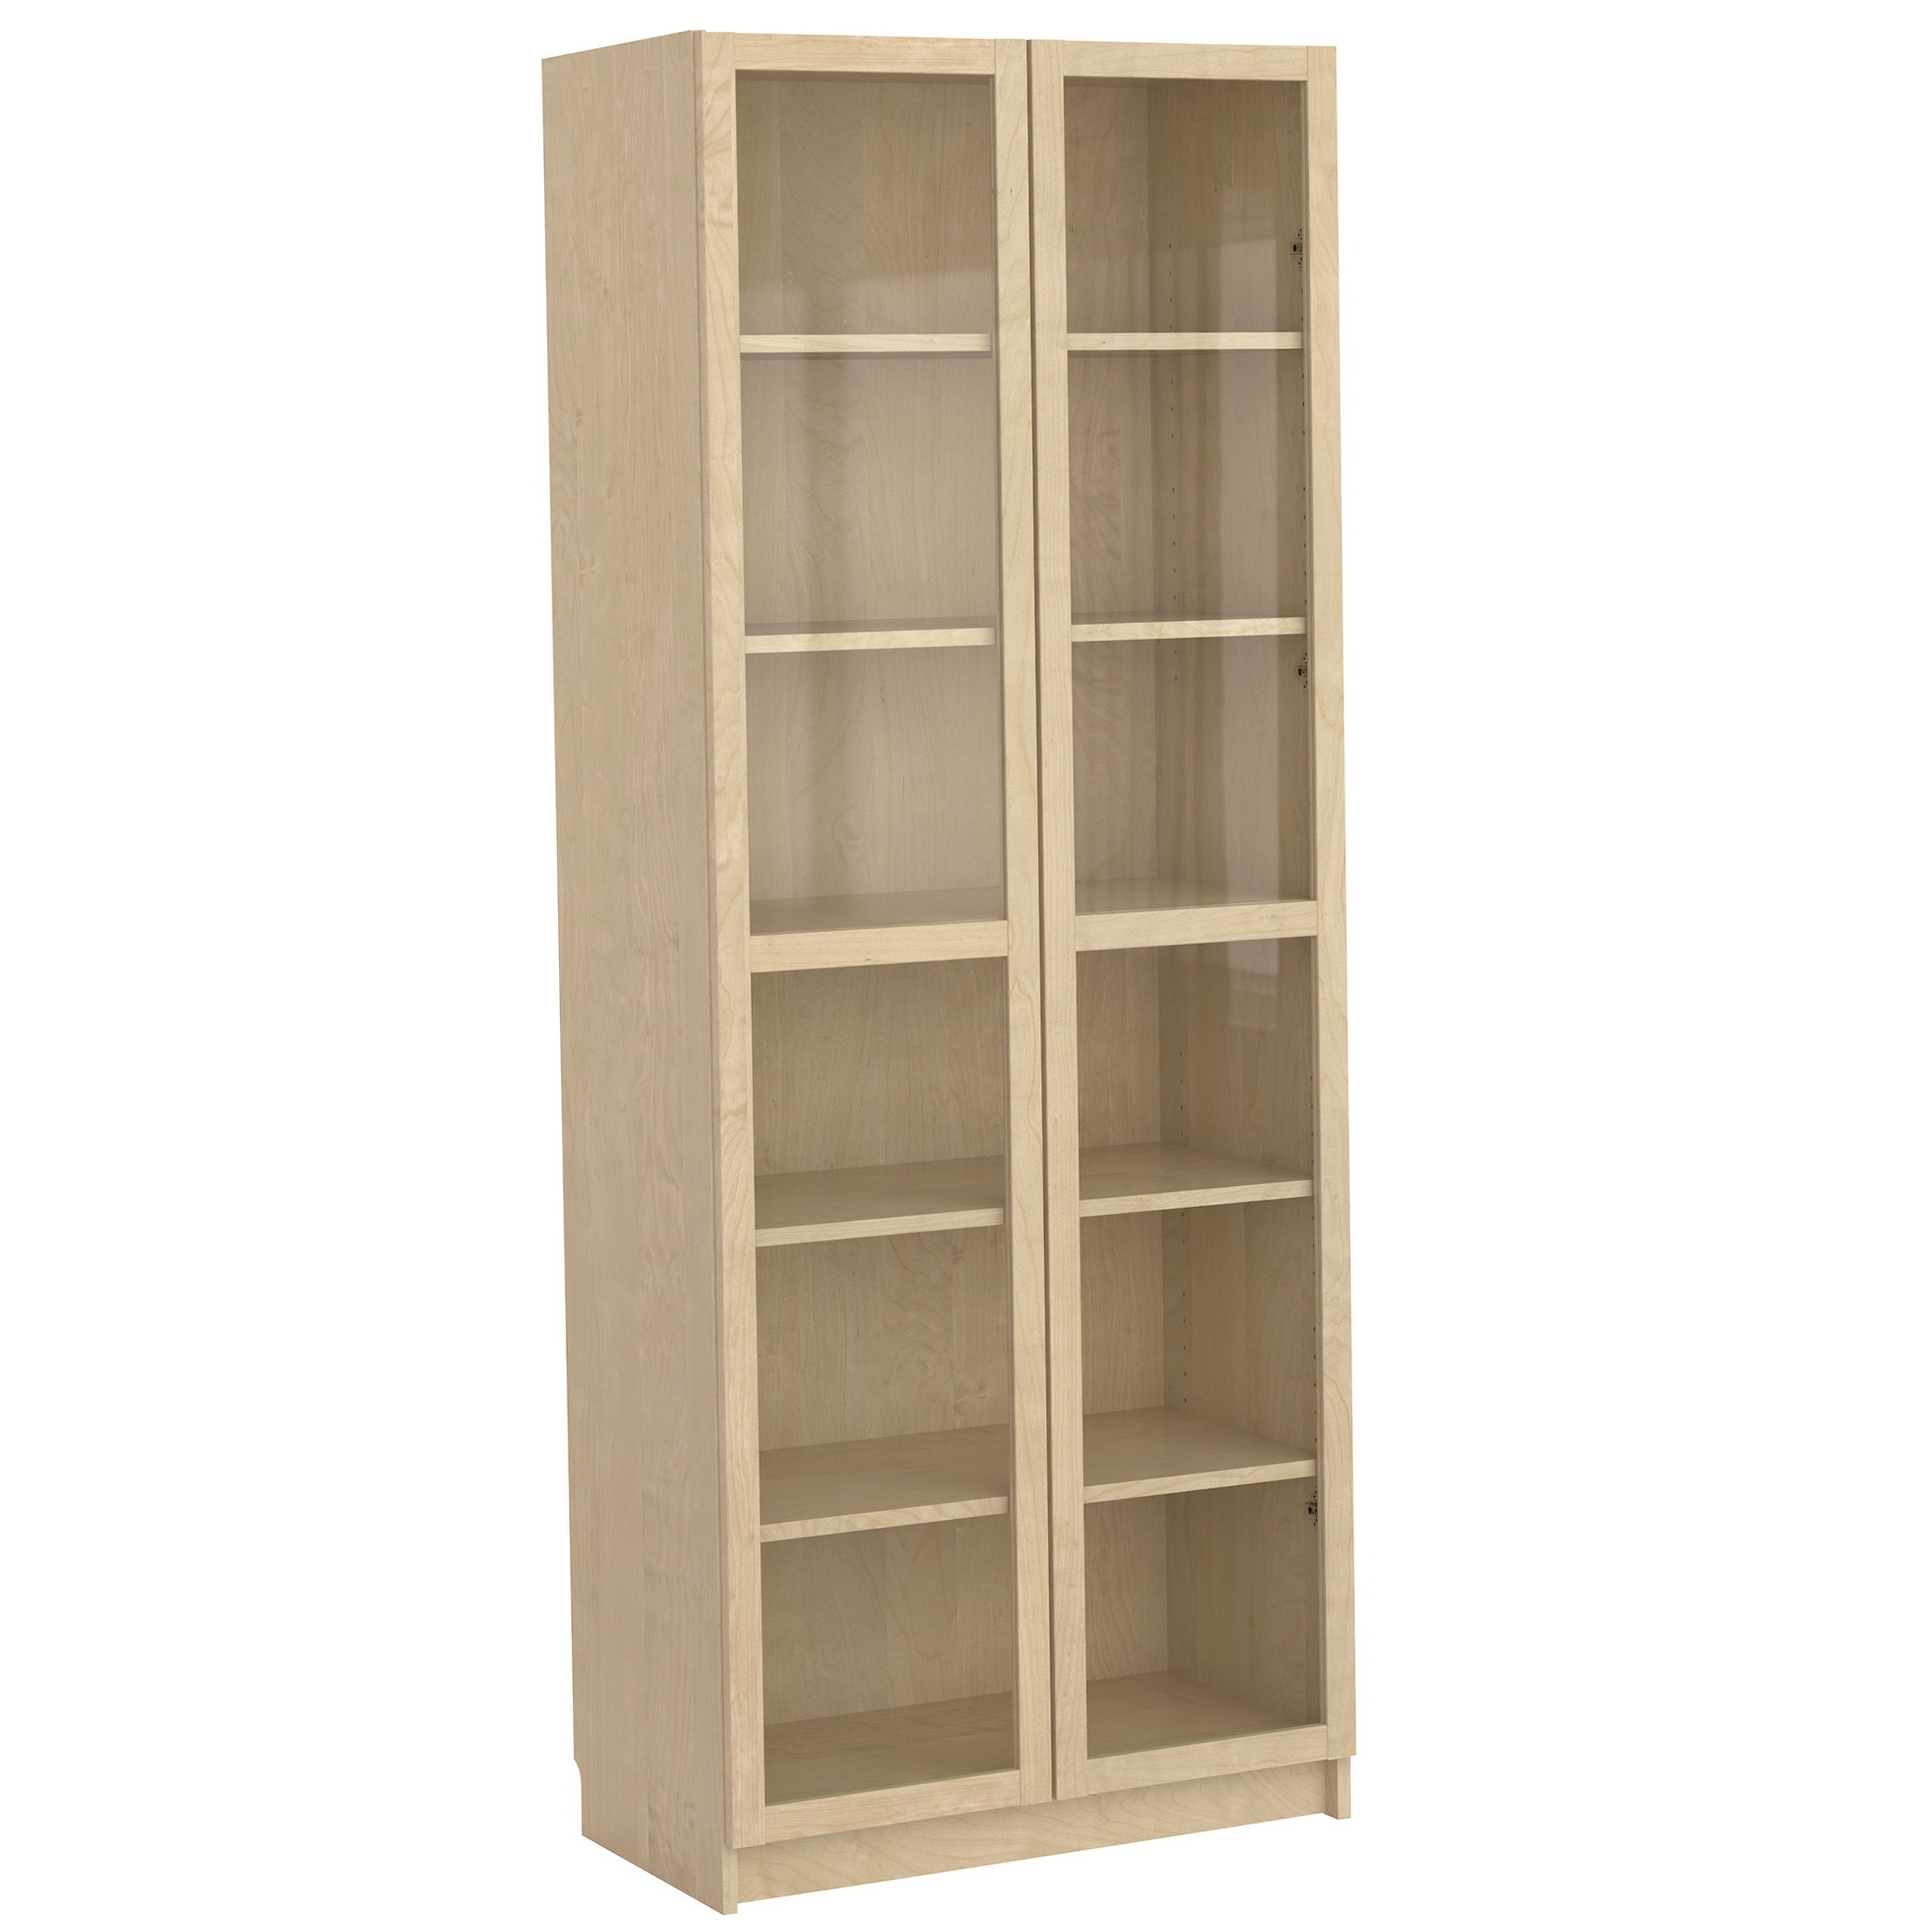 Ikea Bookcase With Glass Doors